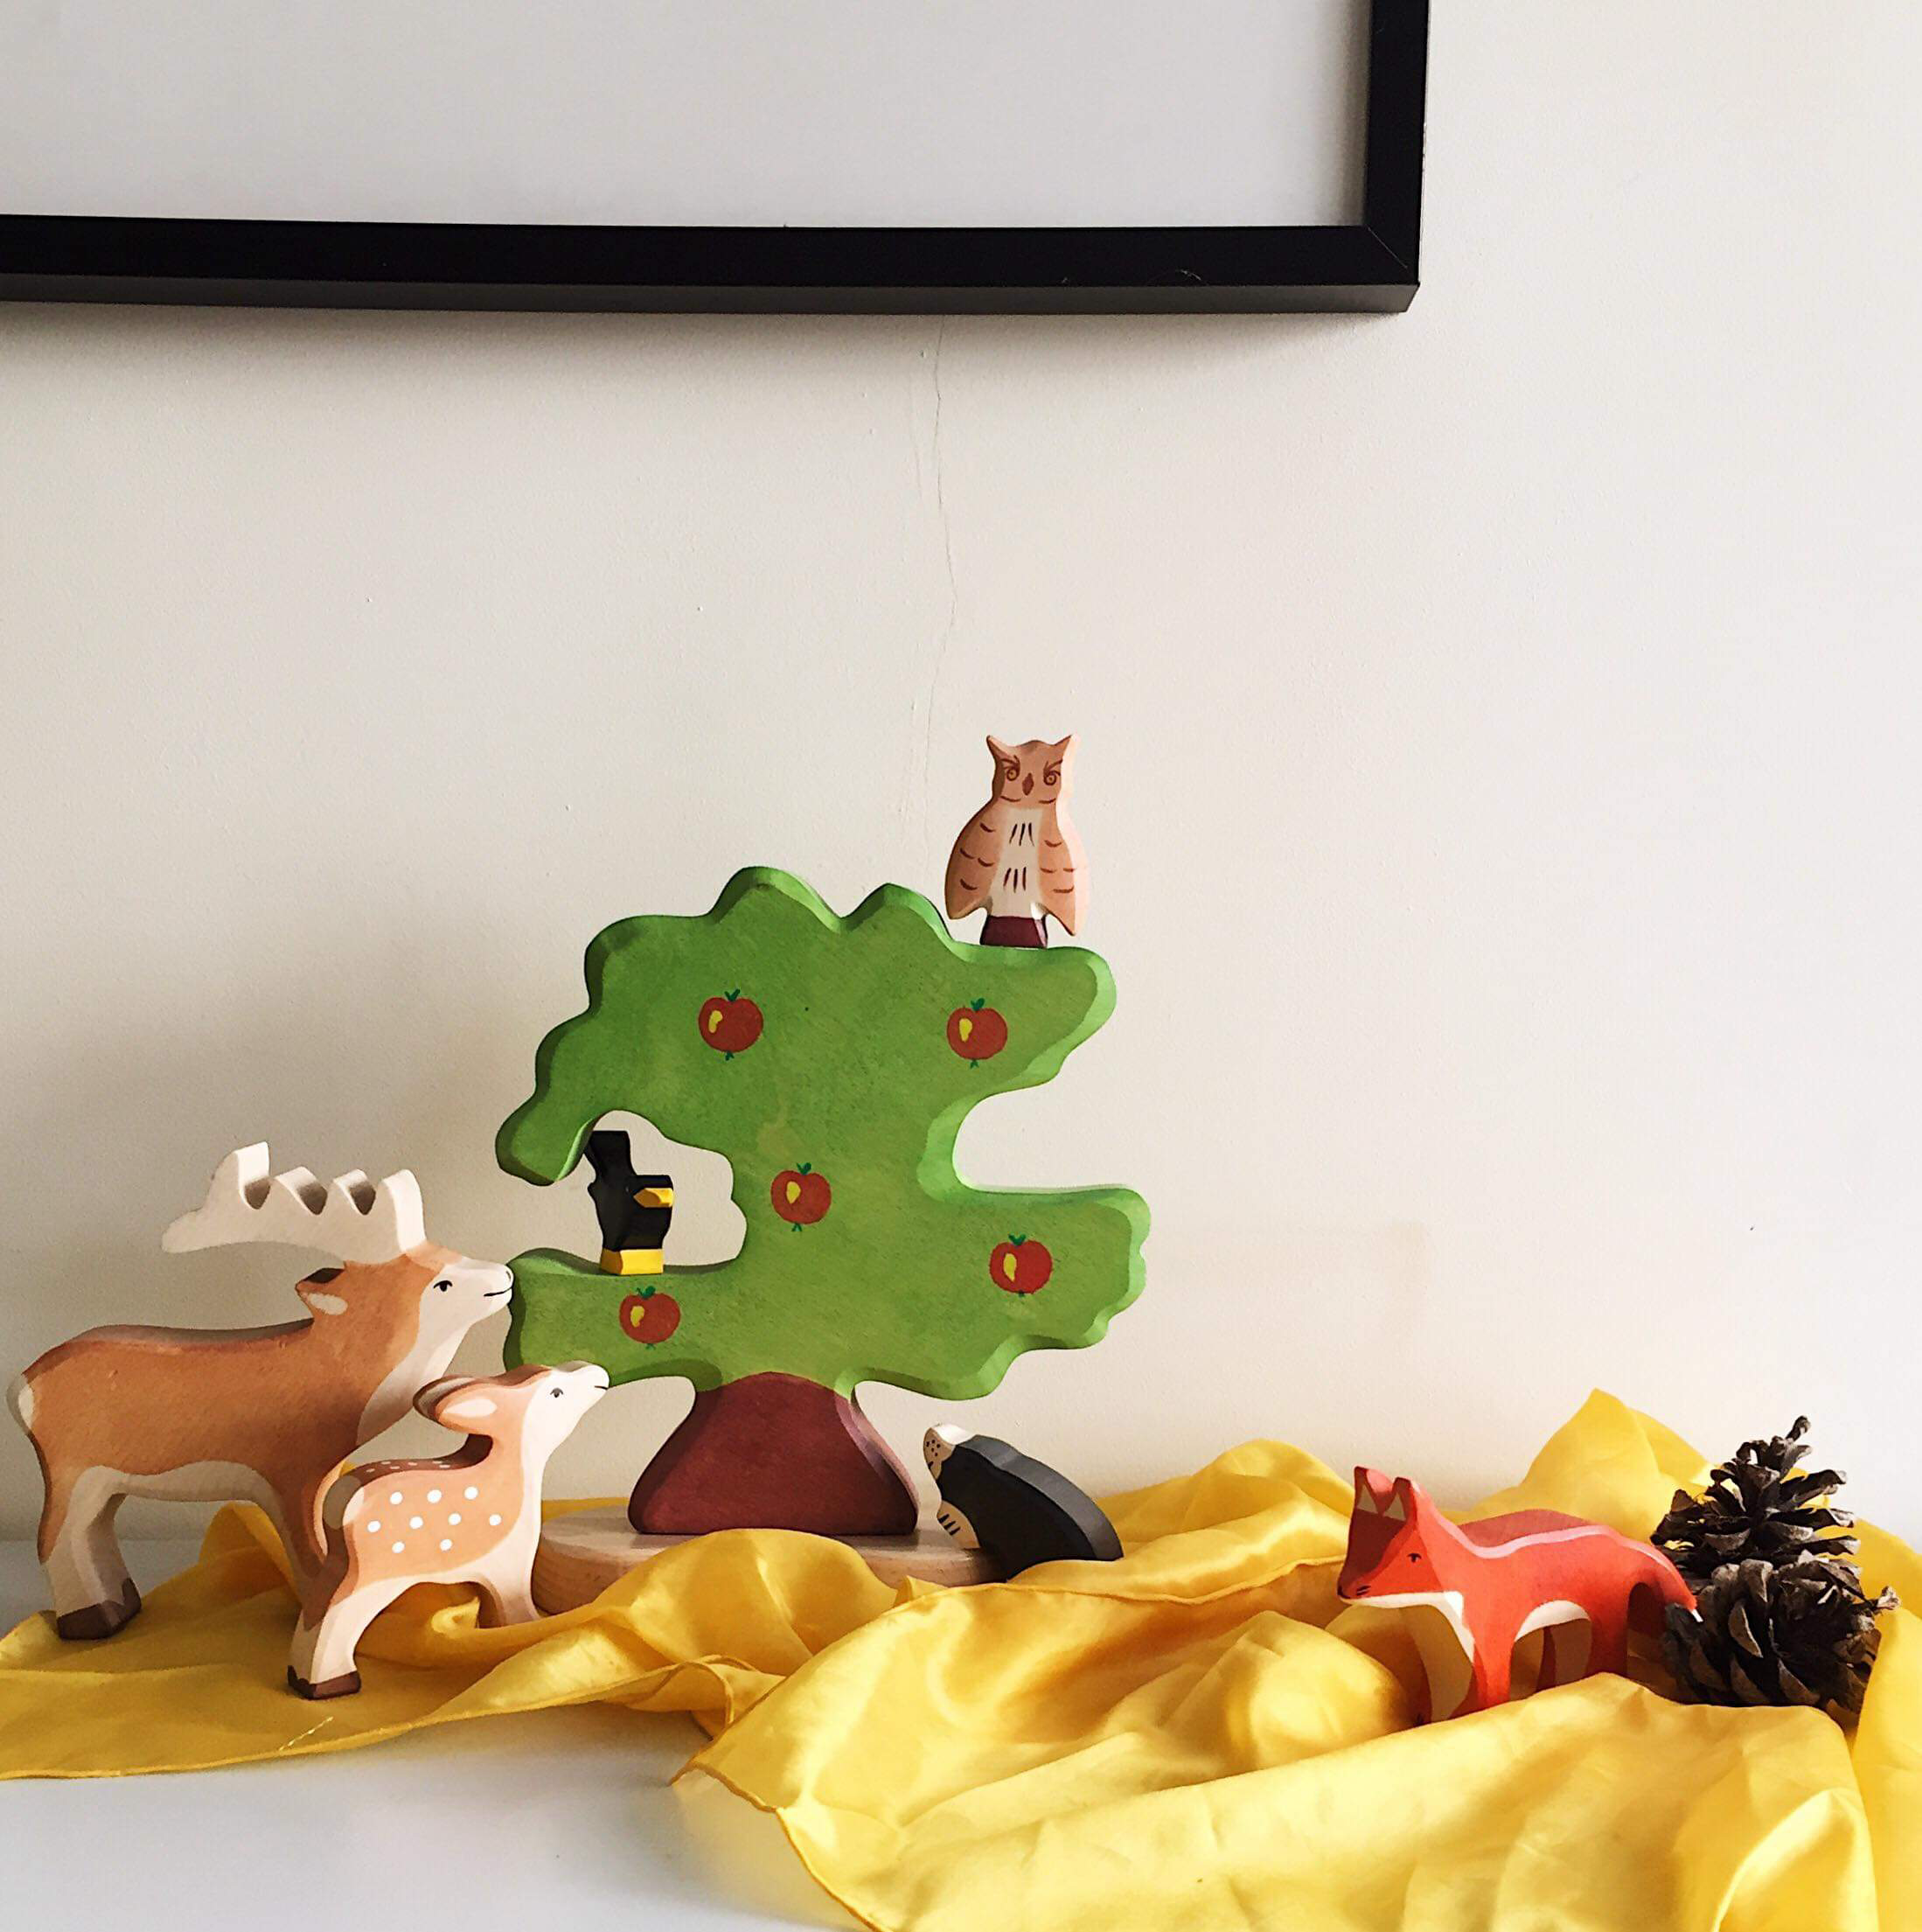 We used a yellow playsilk and a few wooden animals to create an autumnal scene that Eilish loved to play with, as well as gave a nod to the season.